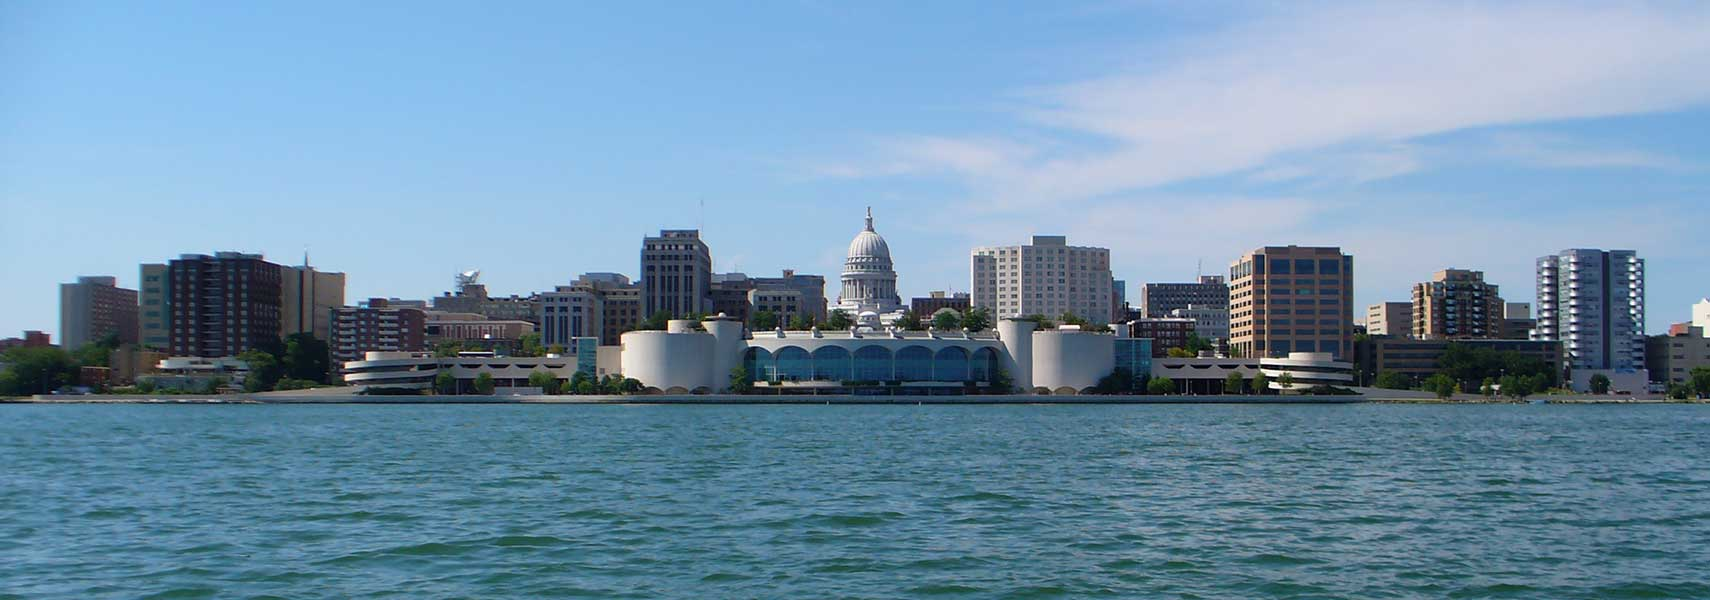 Skyline of Madison, Wisconsin as seen from Lake Monona. Monona Terrace in center